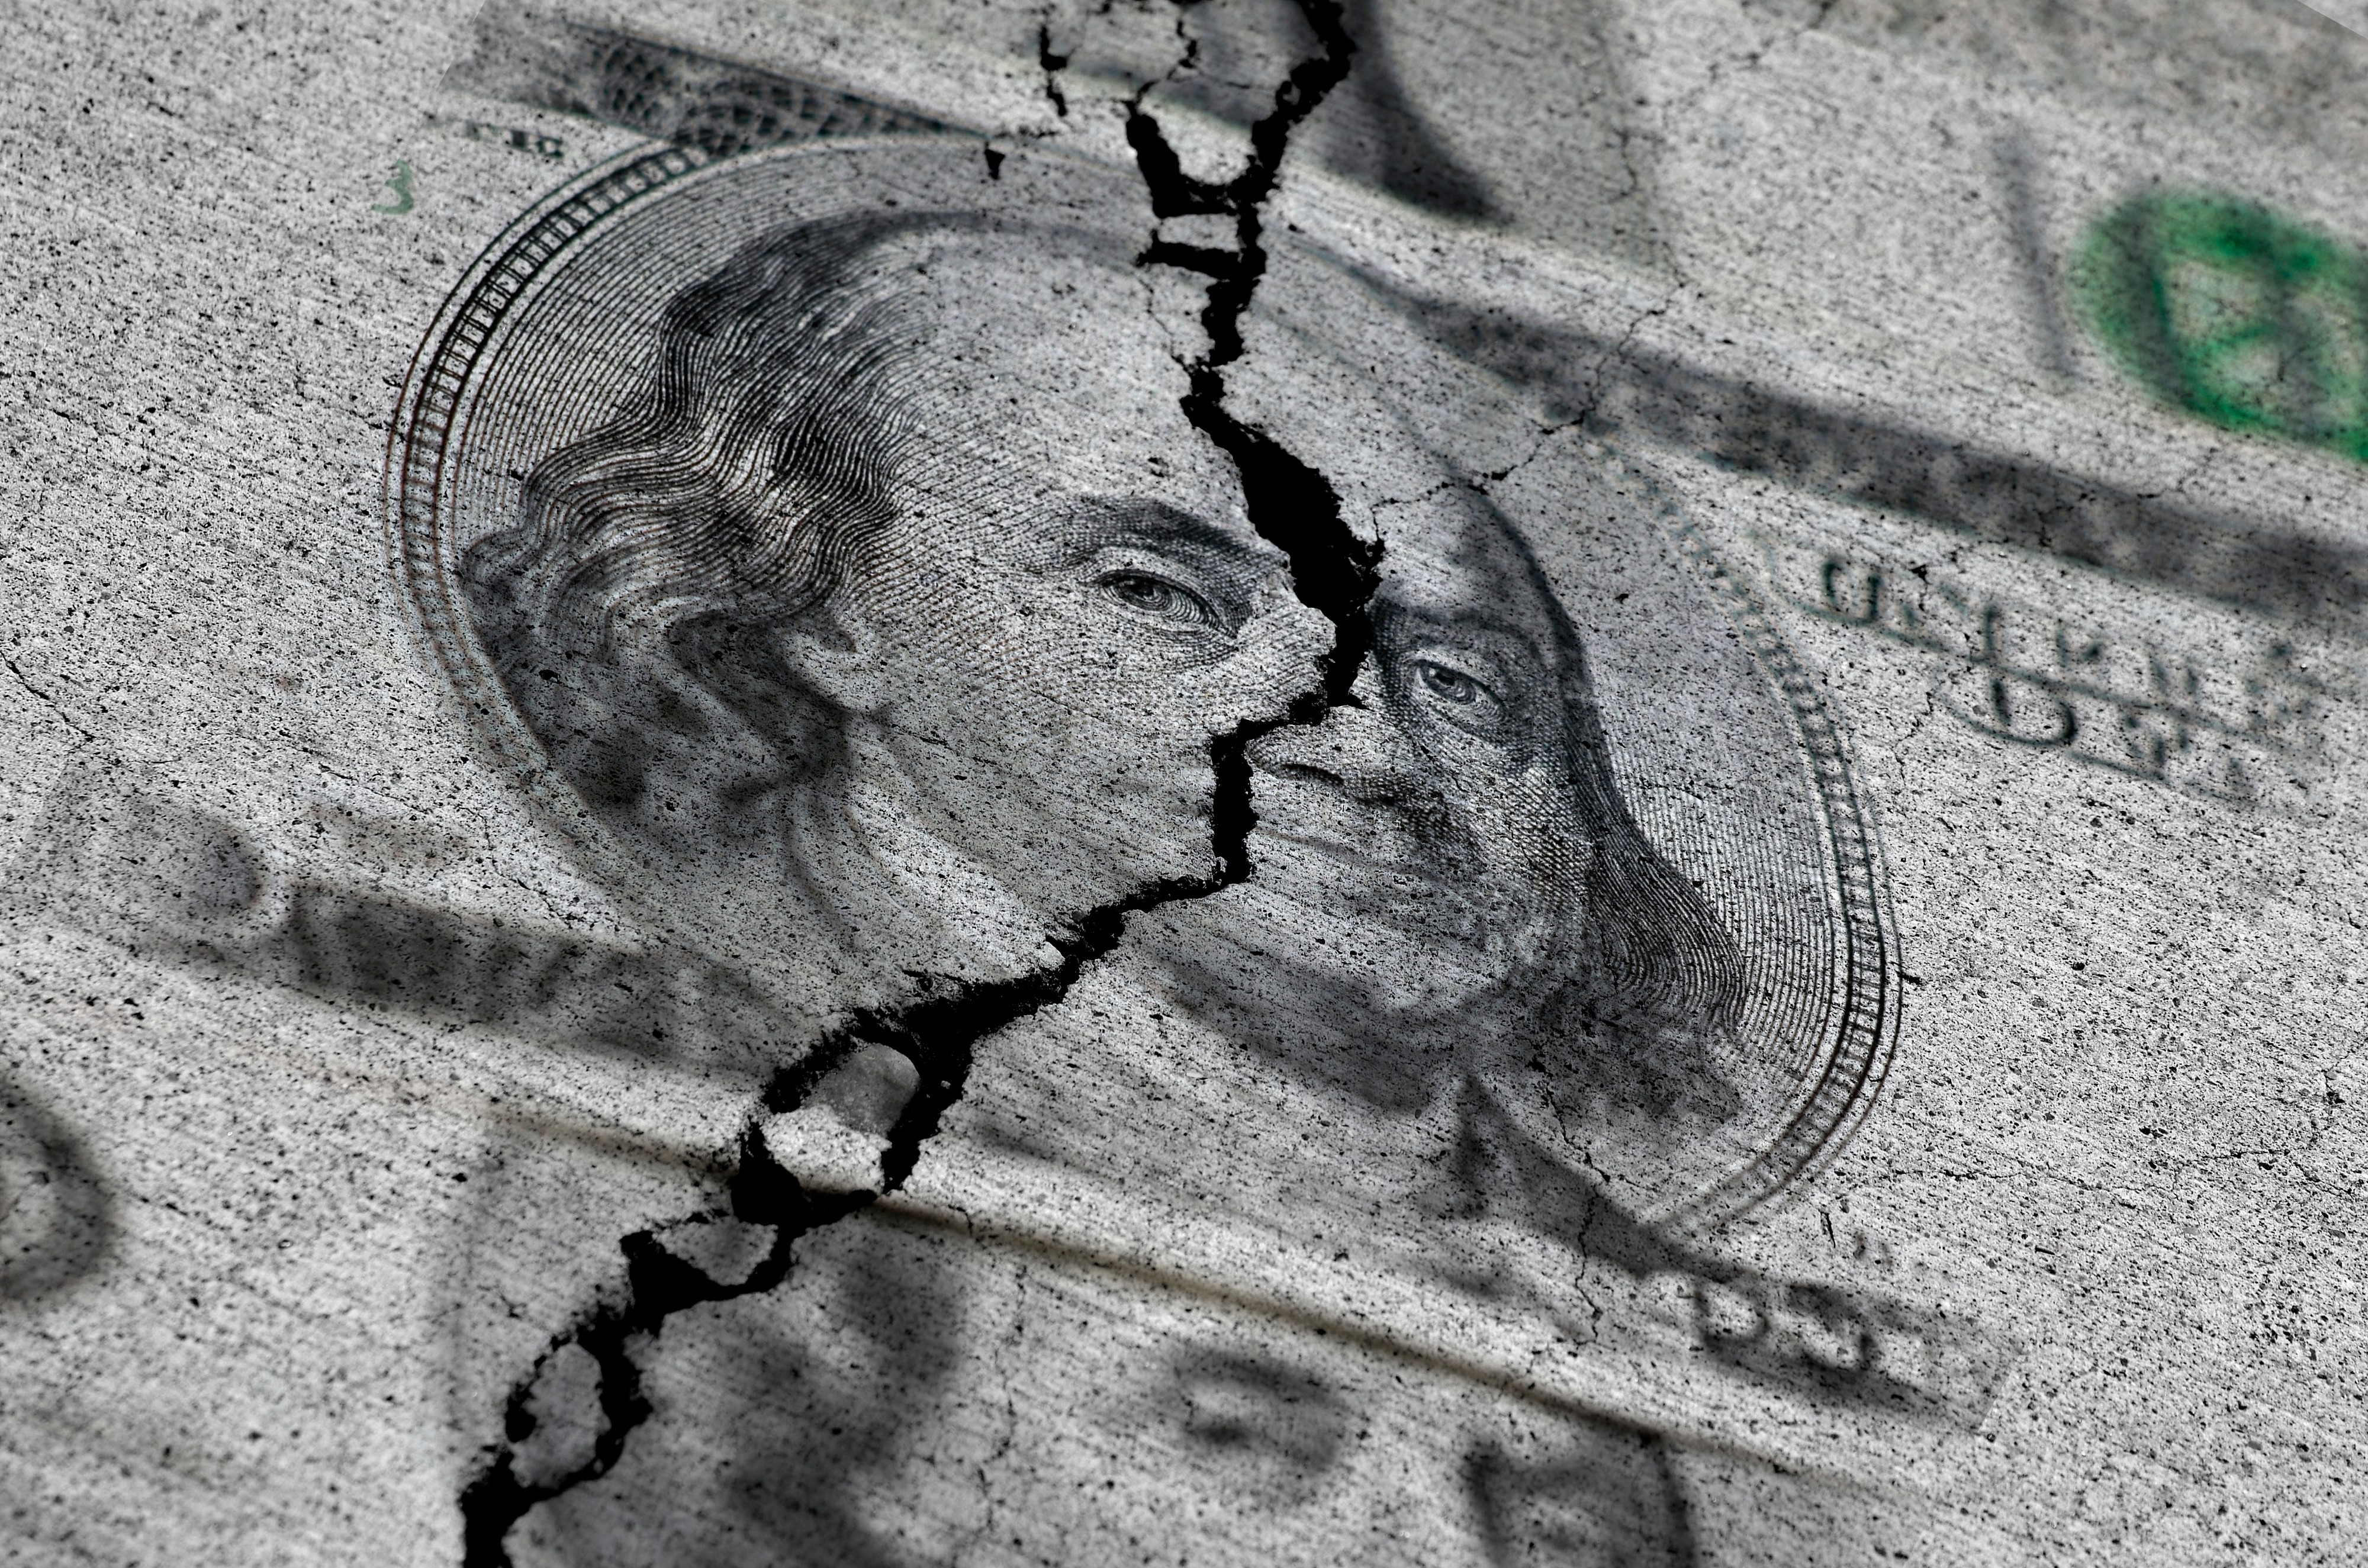 The photo shows a zoomed image on a Benjamin Franklin's face on a $100 bill. There is a crack running through his face extending from the top to the bottom of the frame.